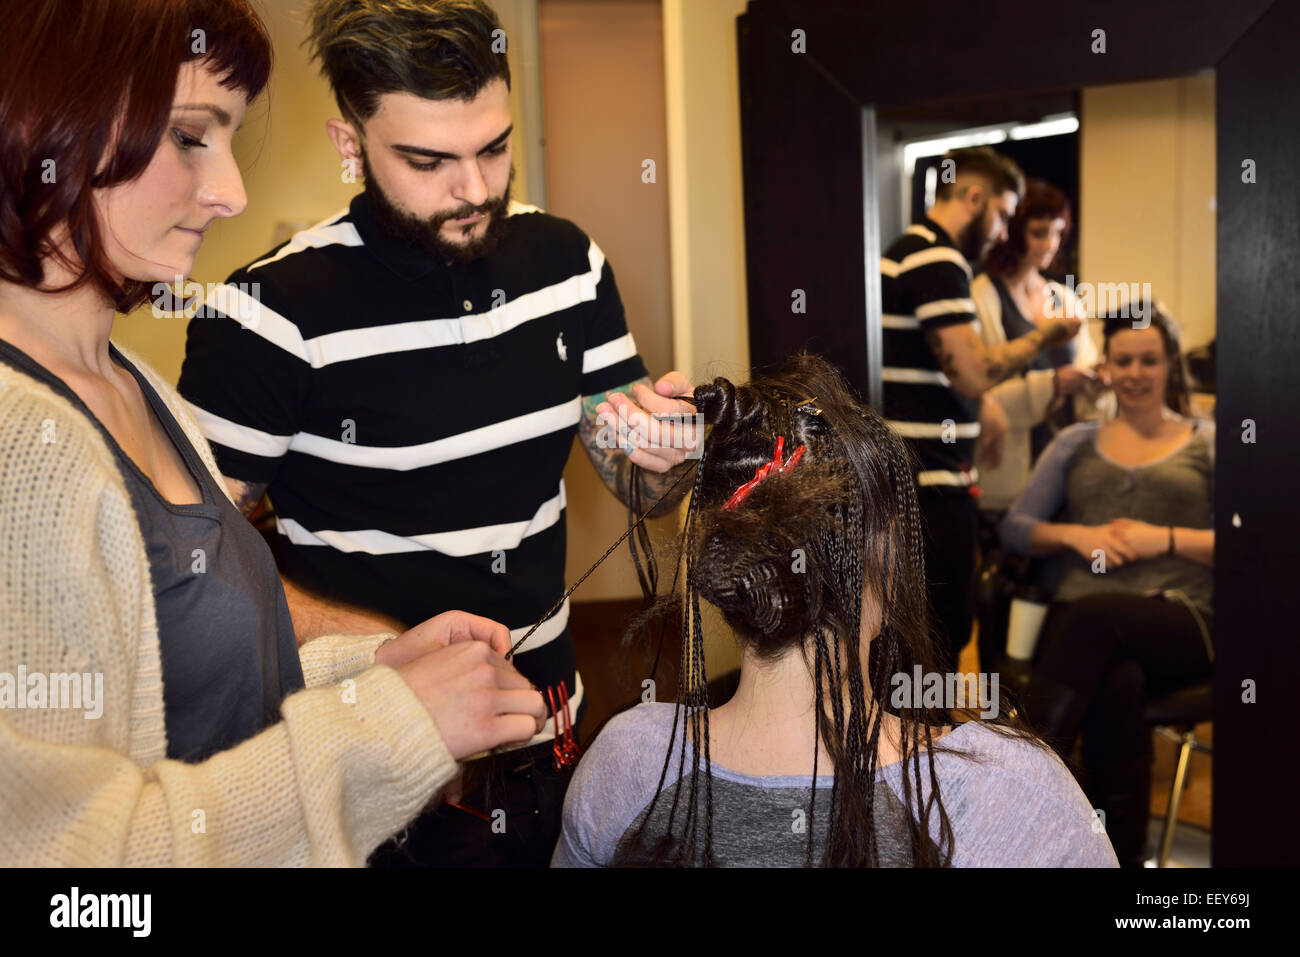 Young male and female trainee hairstylists working on braiding hair of a female customer in a salon - Stock Image